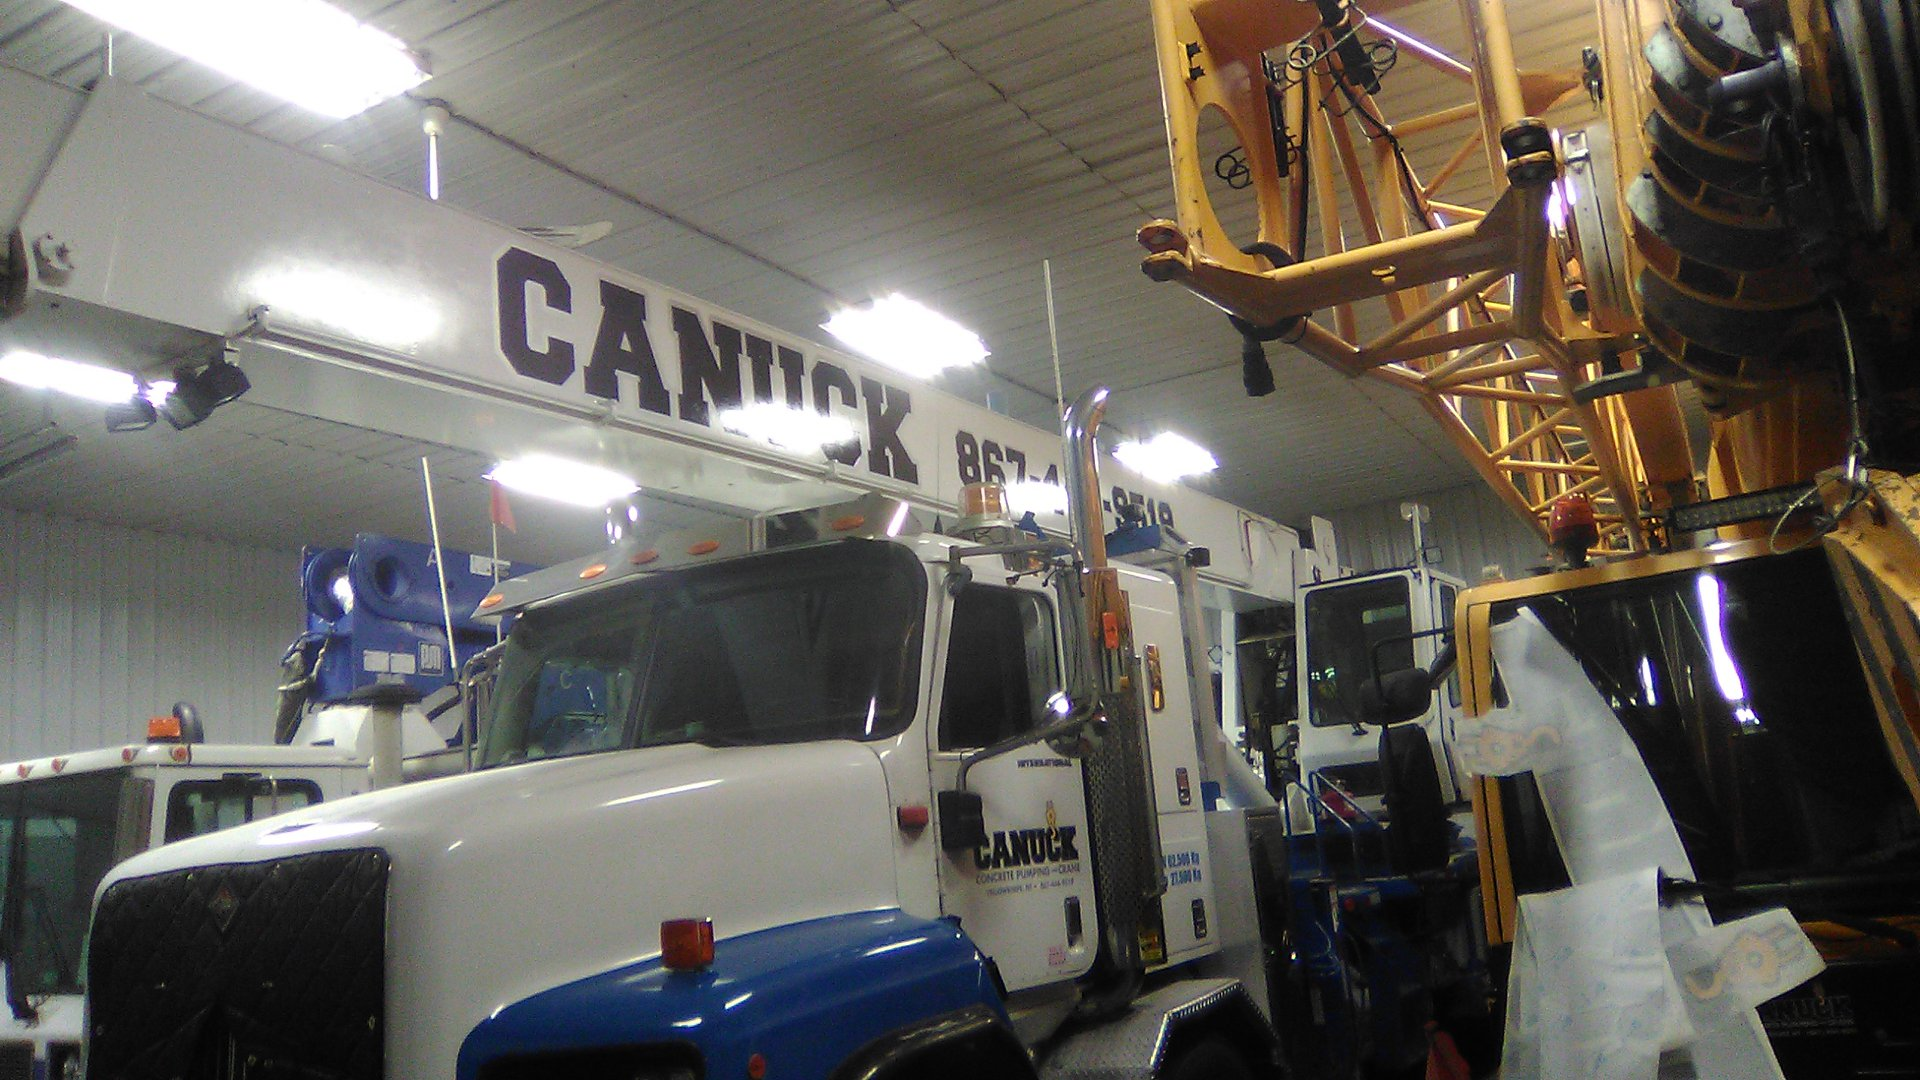 Canuck Pumping & Crane Commercial Truck Decals